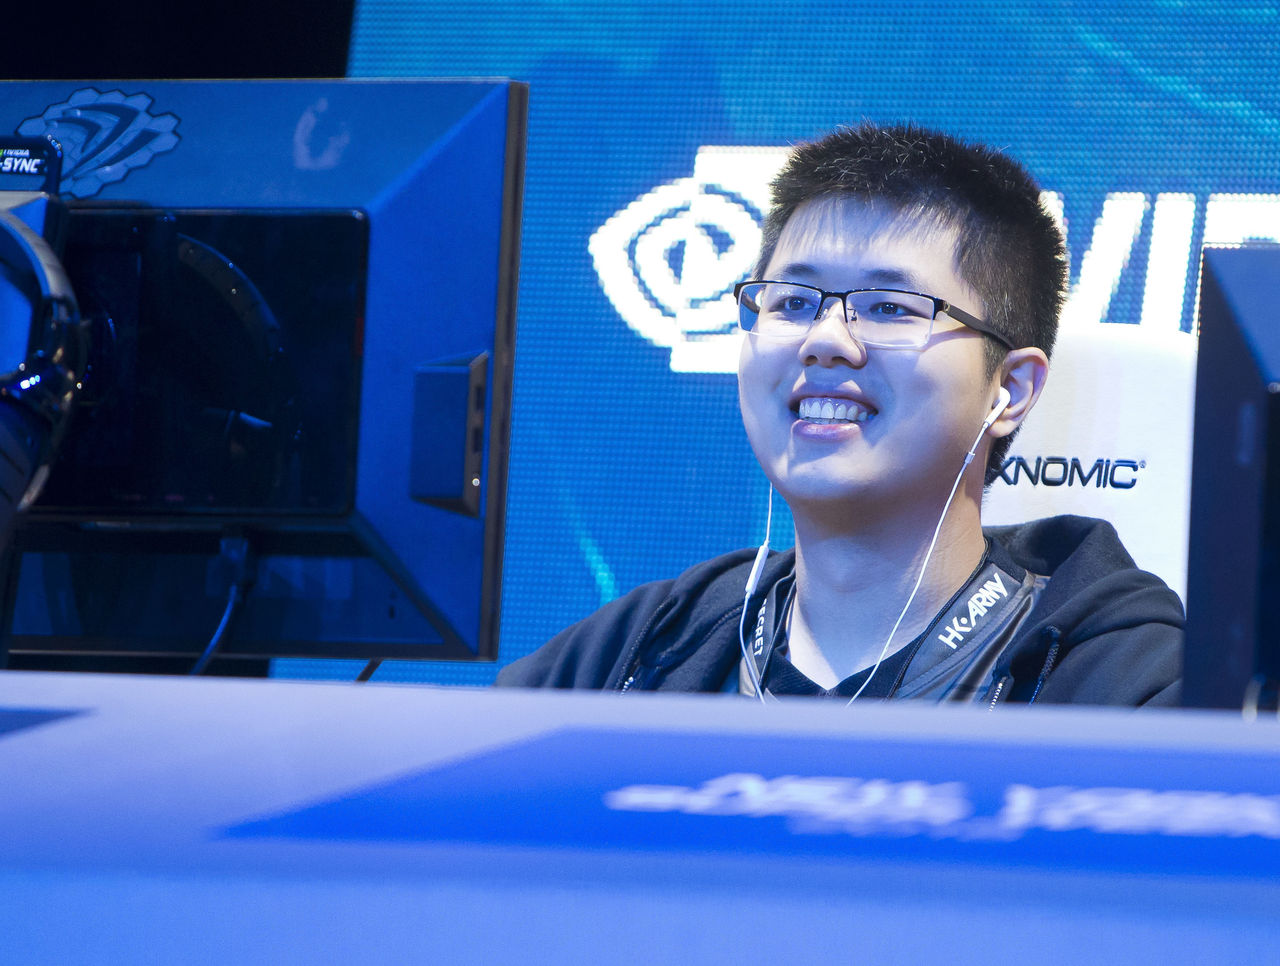 NP Roster Revealed Includes EternalEnvy 1437 Aui2000 TheScore Esports